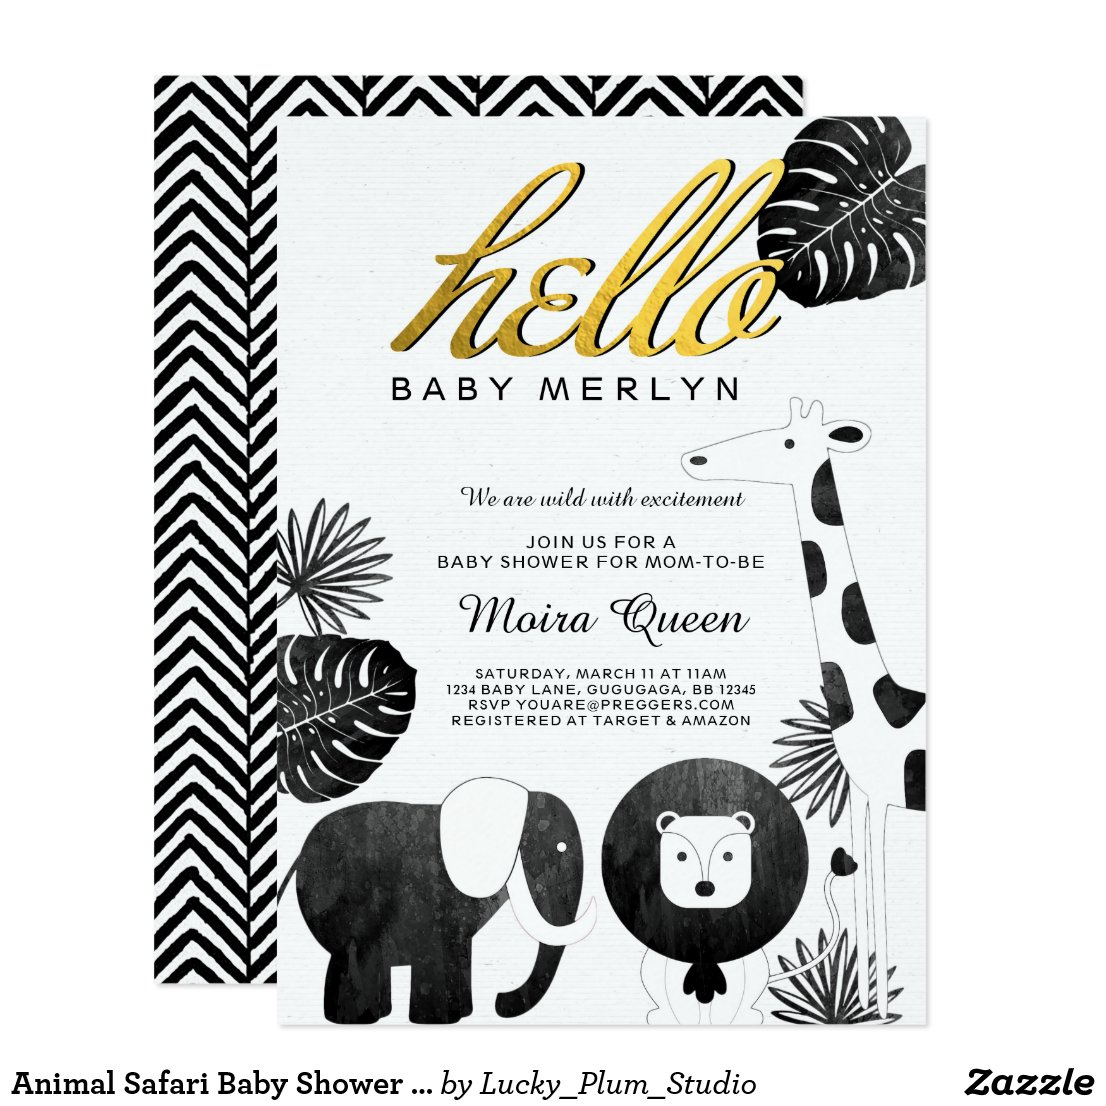 Animal Safari Baby Shower Invite